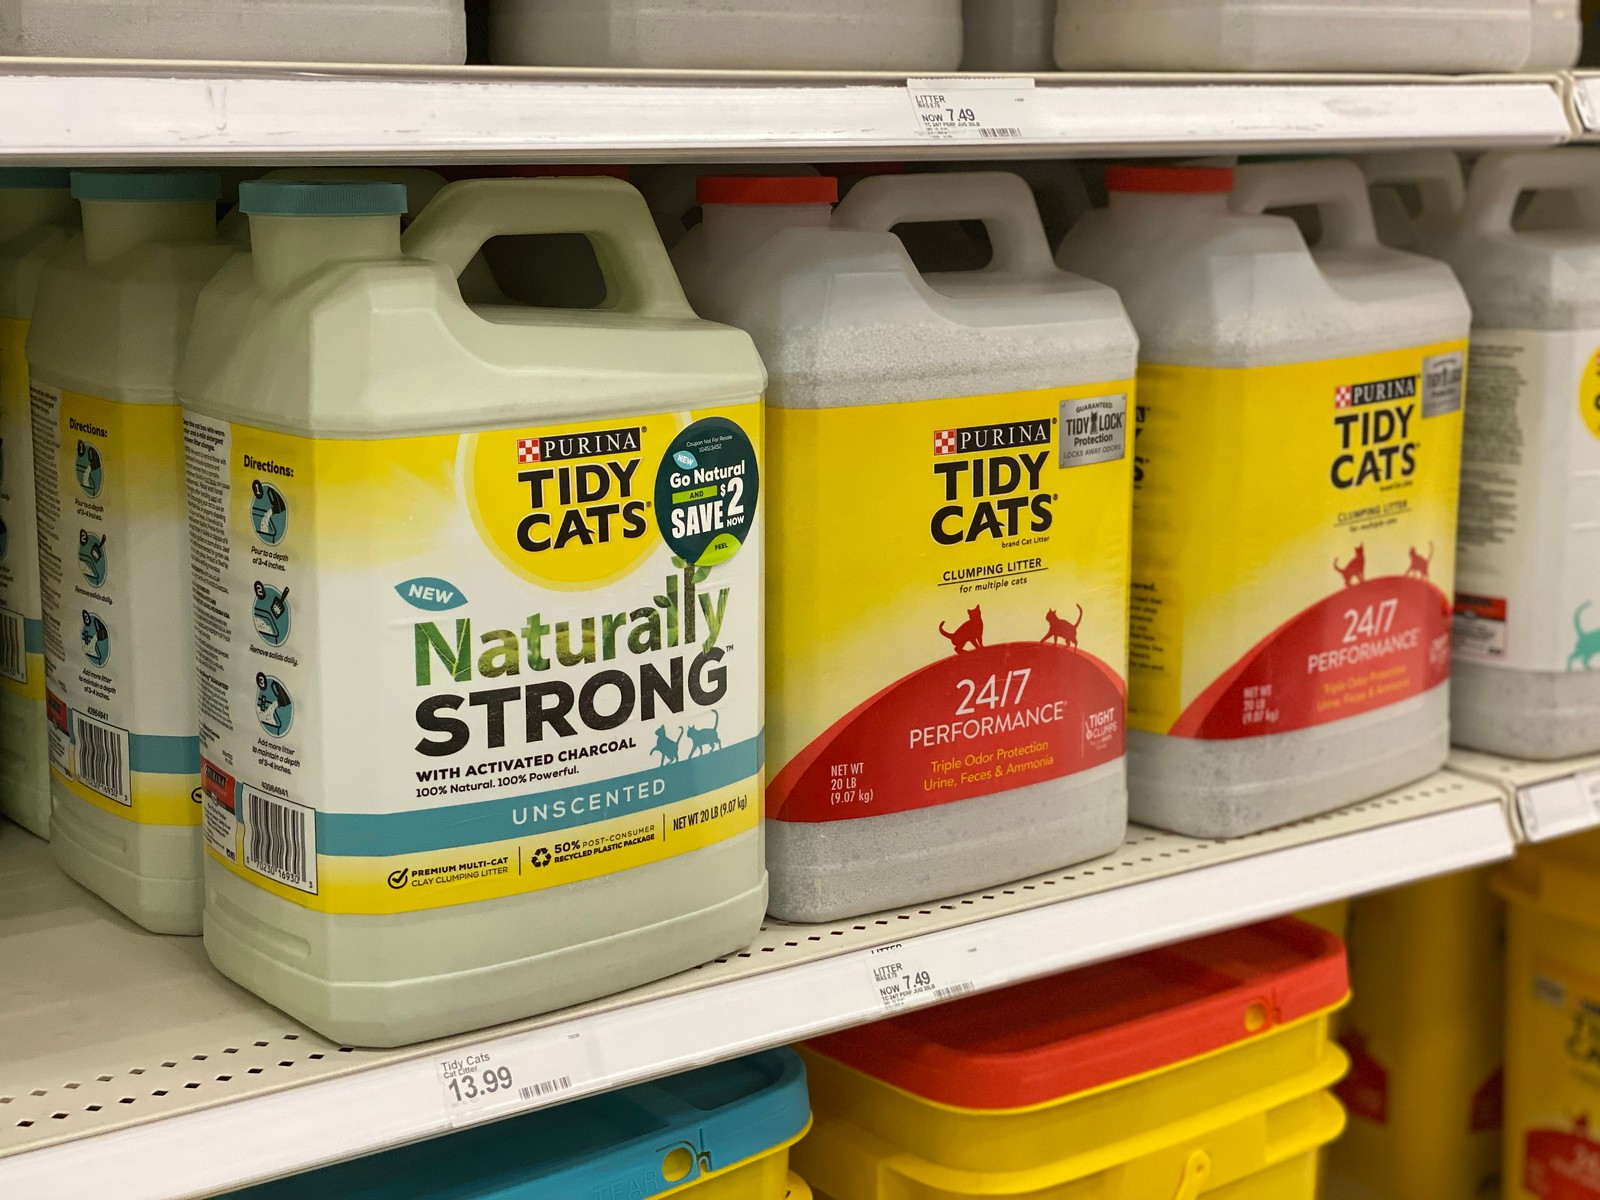 Tidy Cats Naturally Strong Litter 20 pound on store shelf